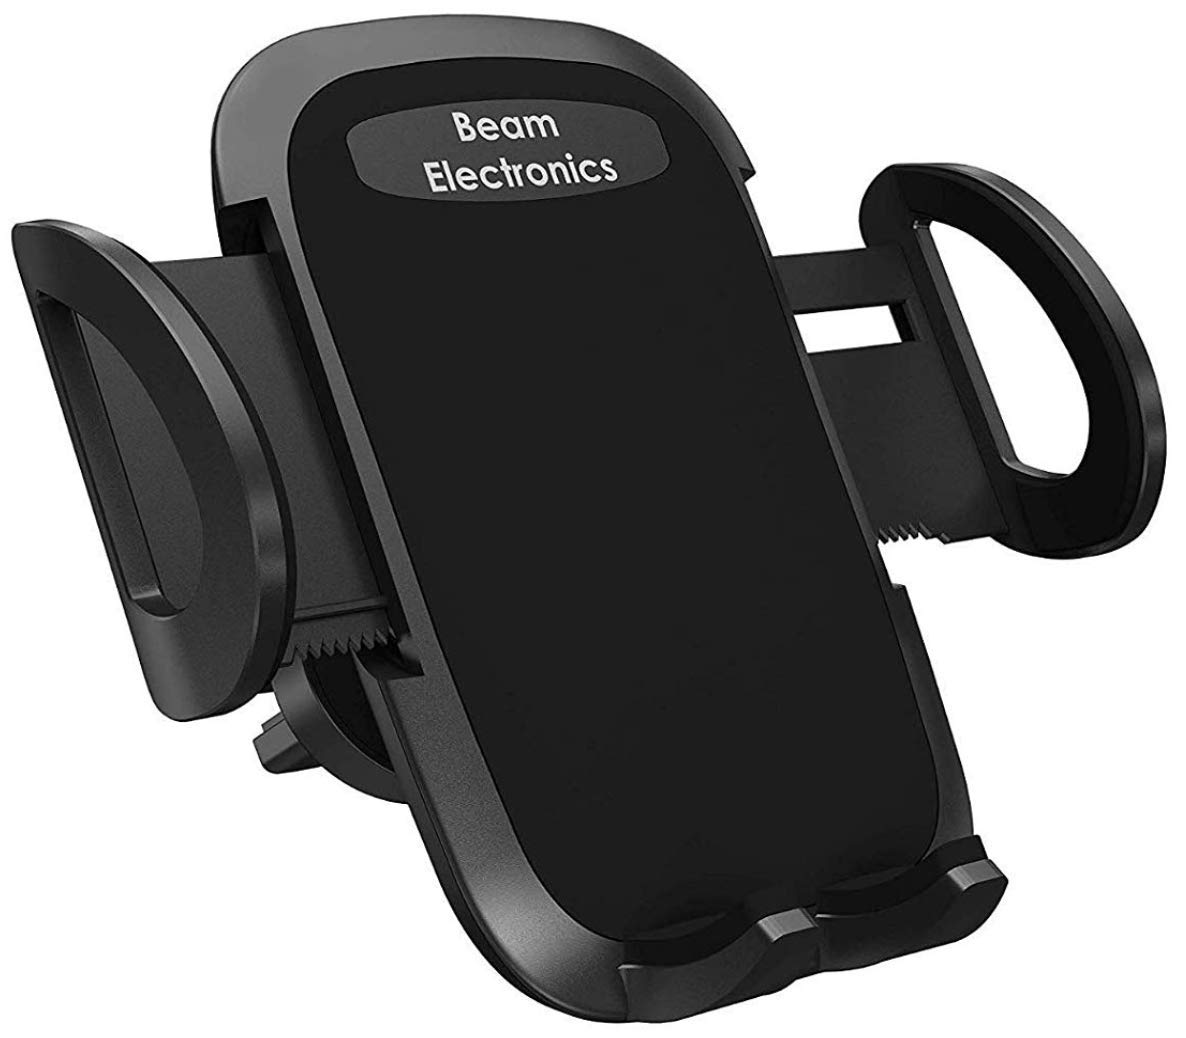 Beam Electronics Universal Smartphone Car Air Vent Mount Holder Cradle Compatible with iPhone Xs XS Max XR X 8 8+ 7 7+ SE 6s 6+ 6 5s 4 Samsung Galaxy S10 S9 S8 S7 S6 S5 S4 LG Nexus (Black) by Beam Electronics